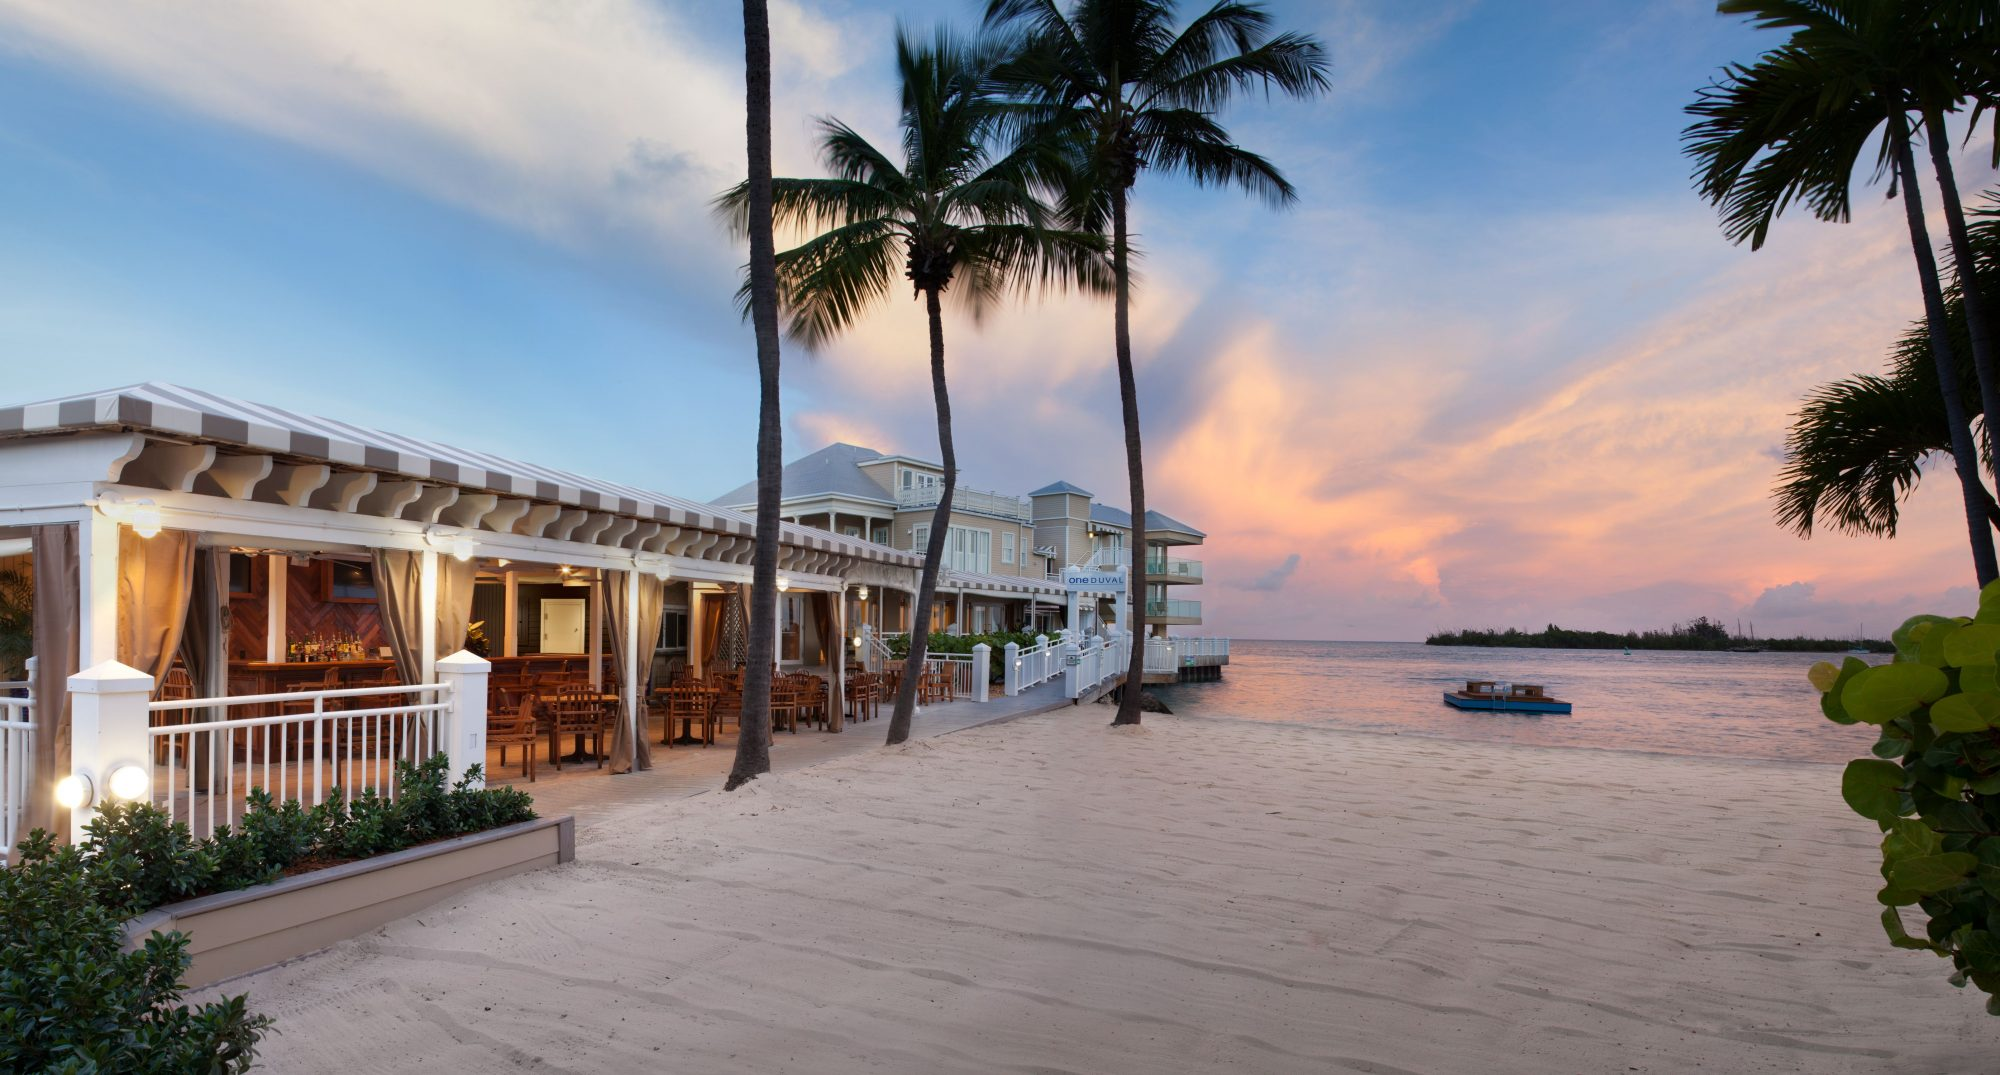 No. 25 The Pier House Resort & Caribbean Spa in Key West, Florida